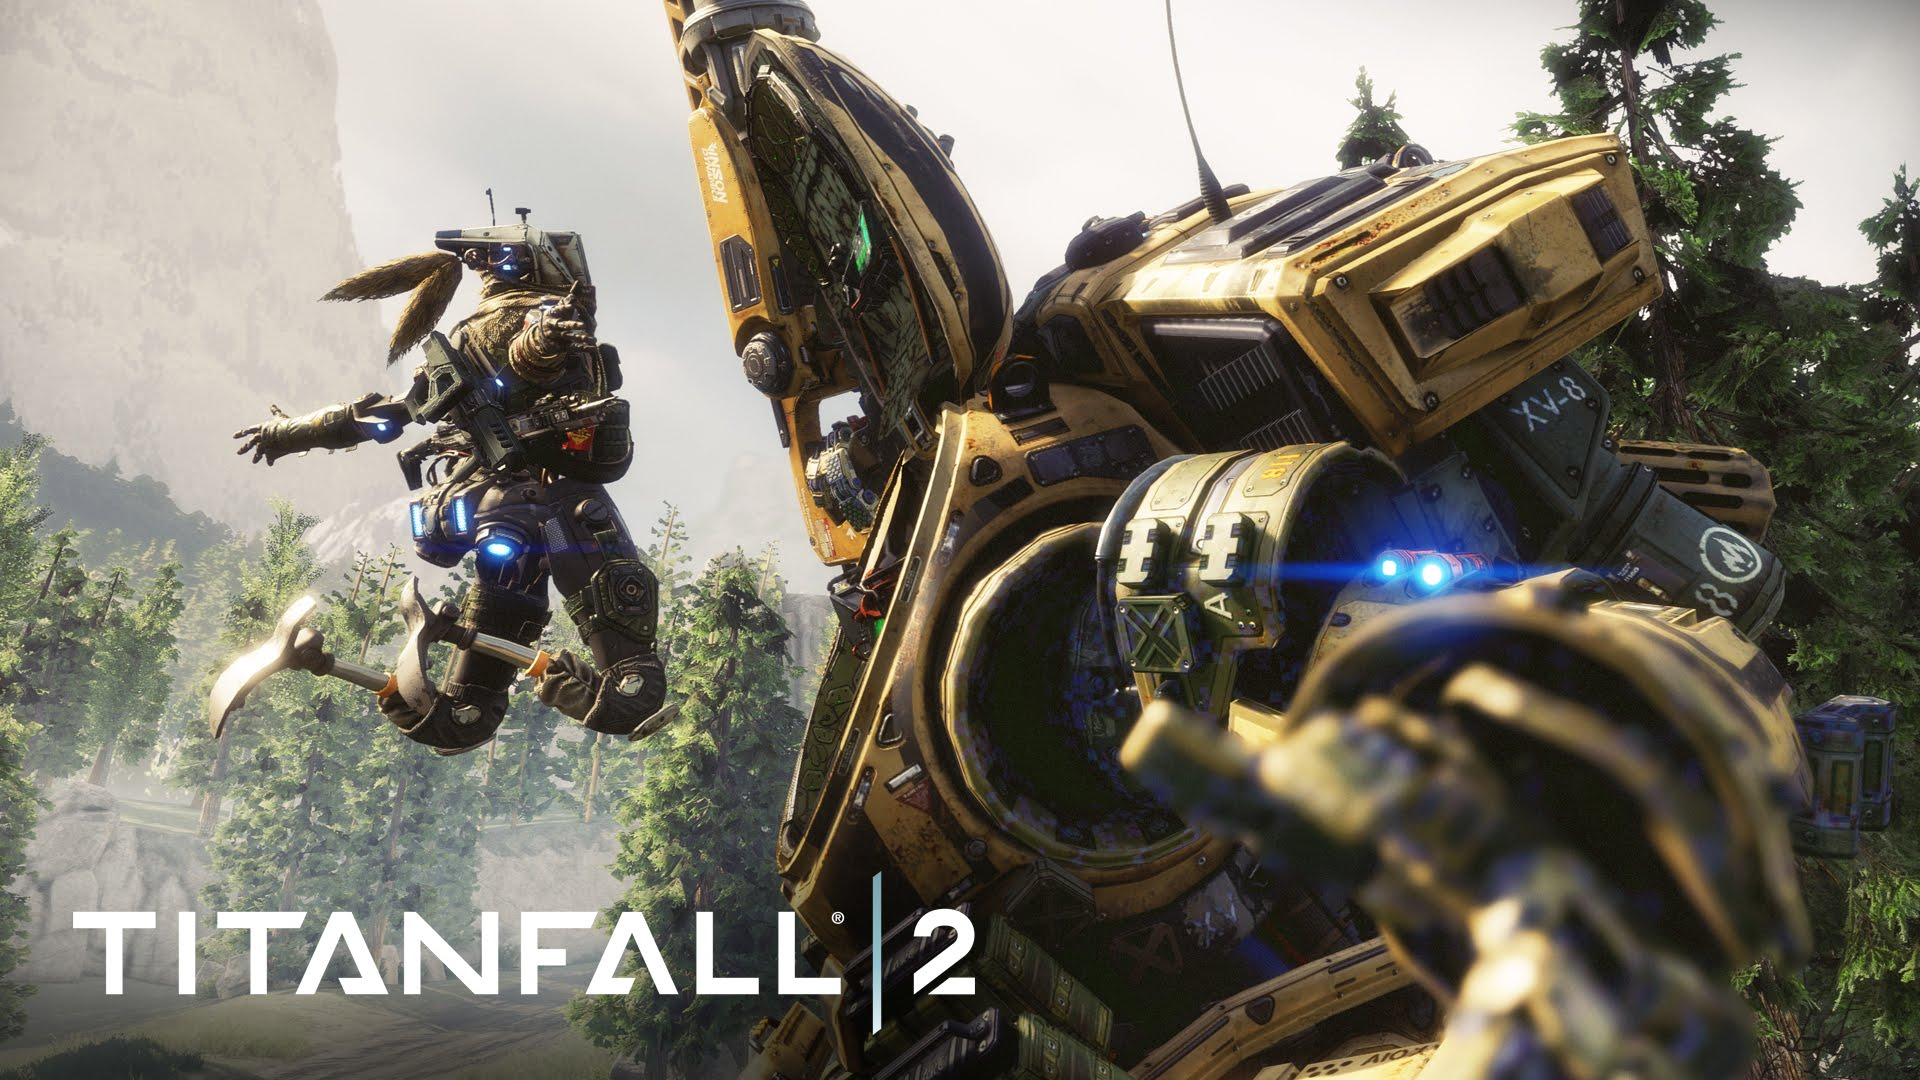 Photo of Titanfall 2 include GameWorks și vești proaste pentru Eelctronic Arts